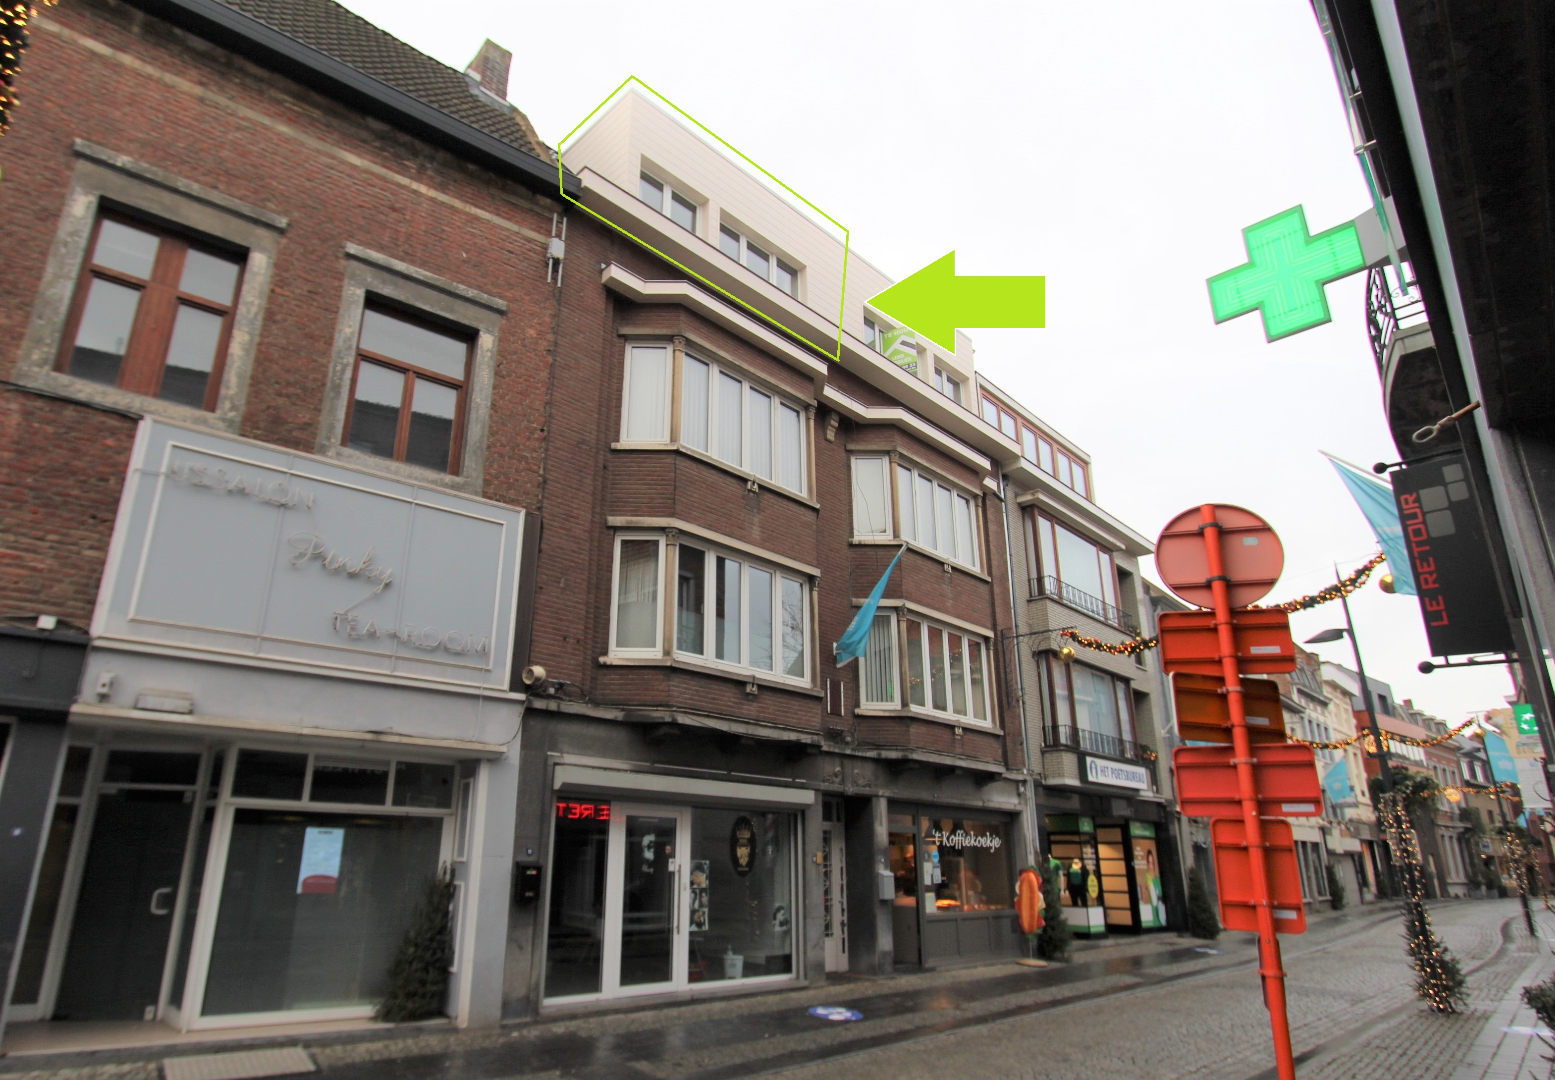 Hemelingenstraat 12 bus 5